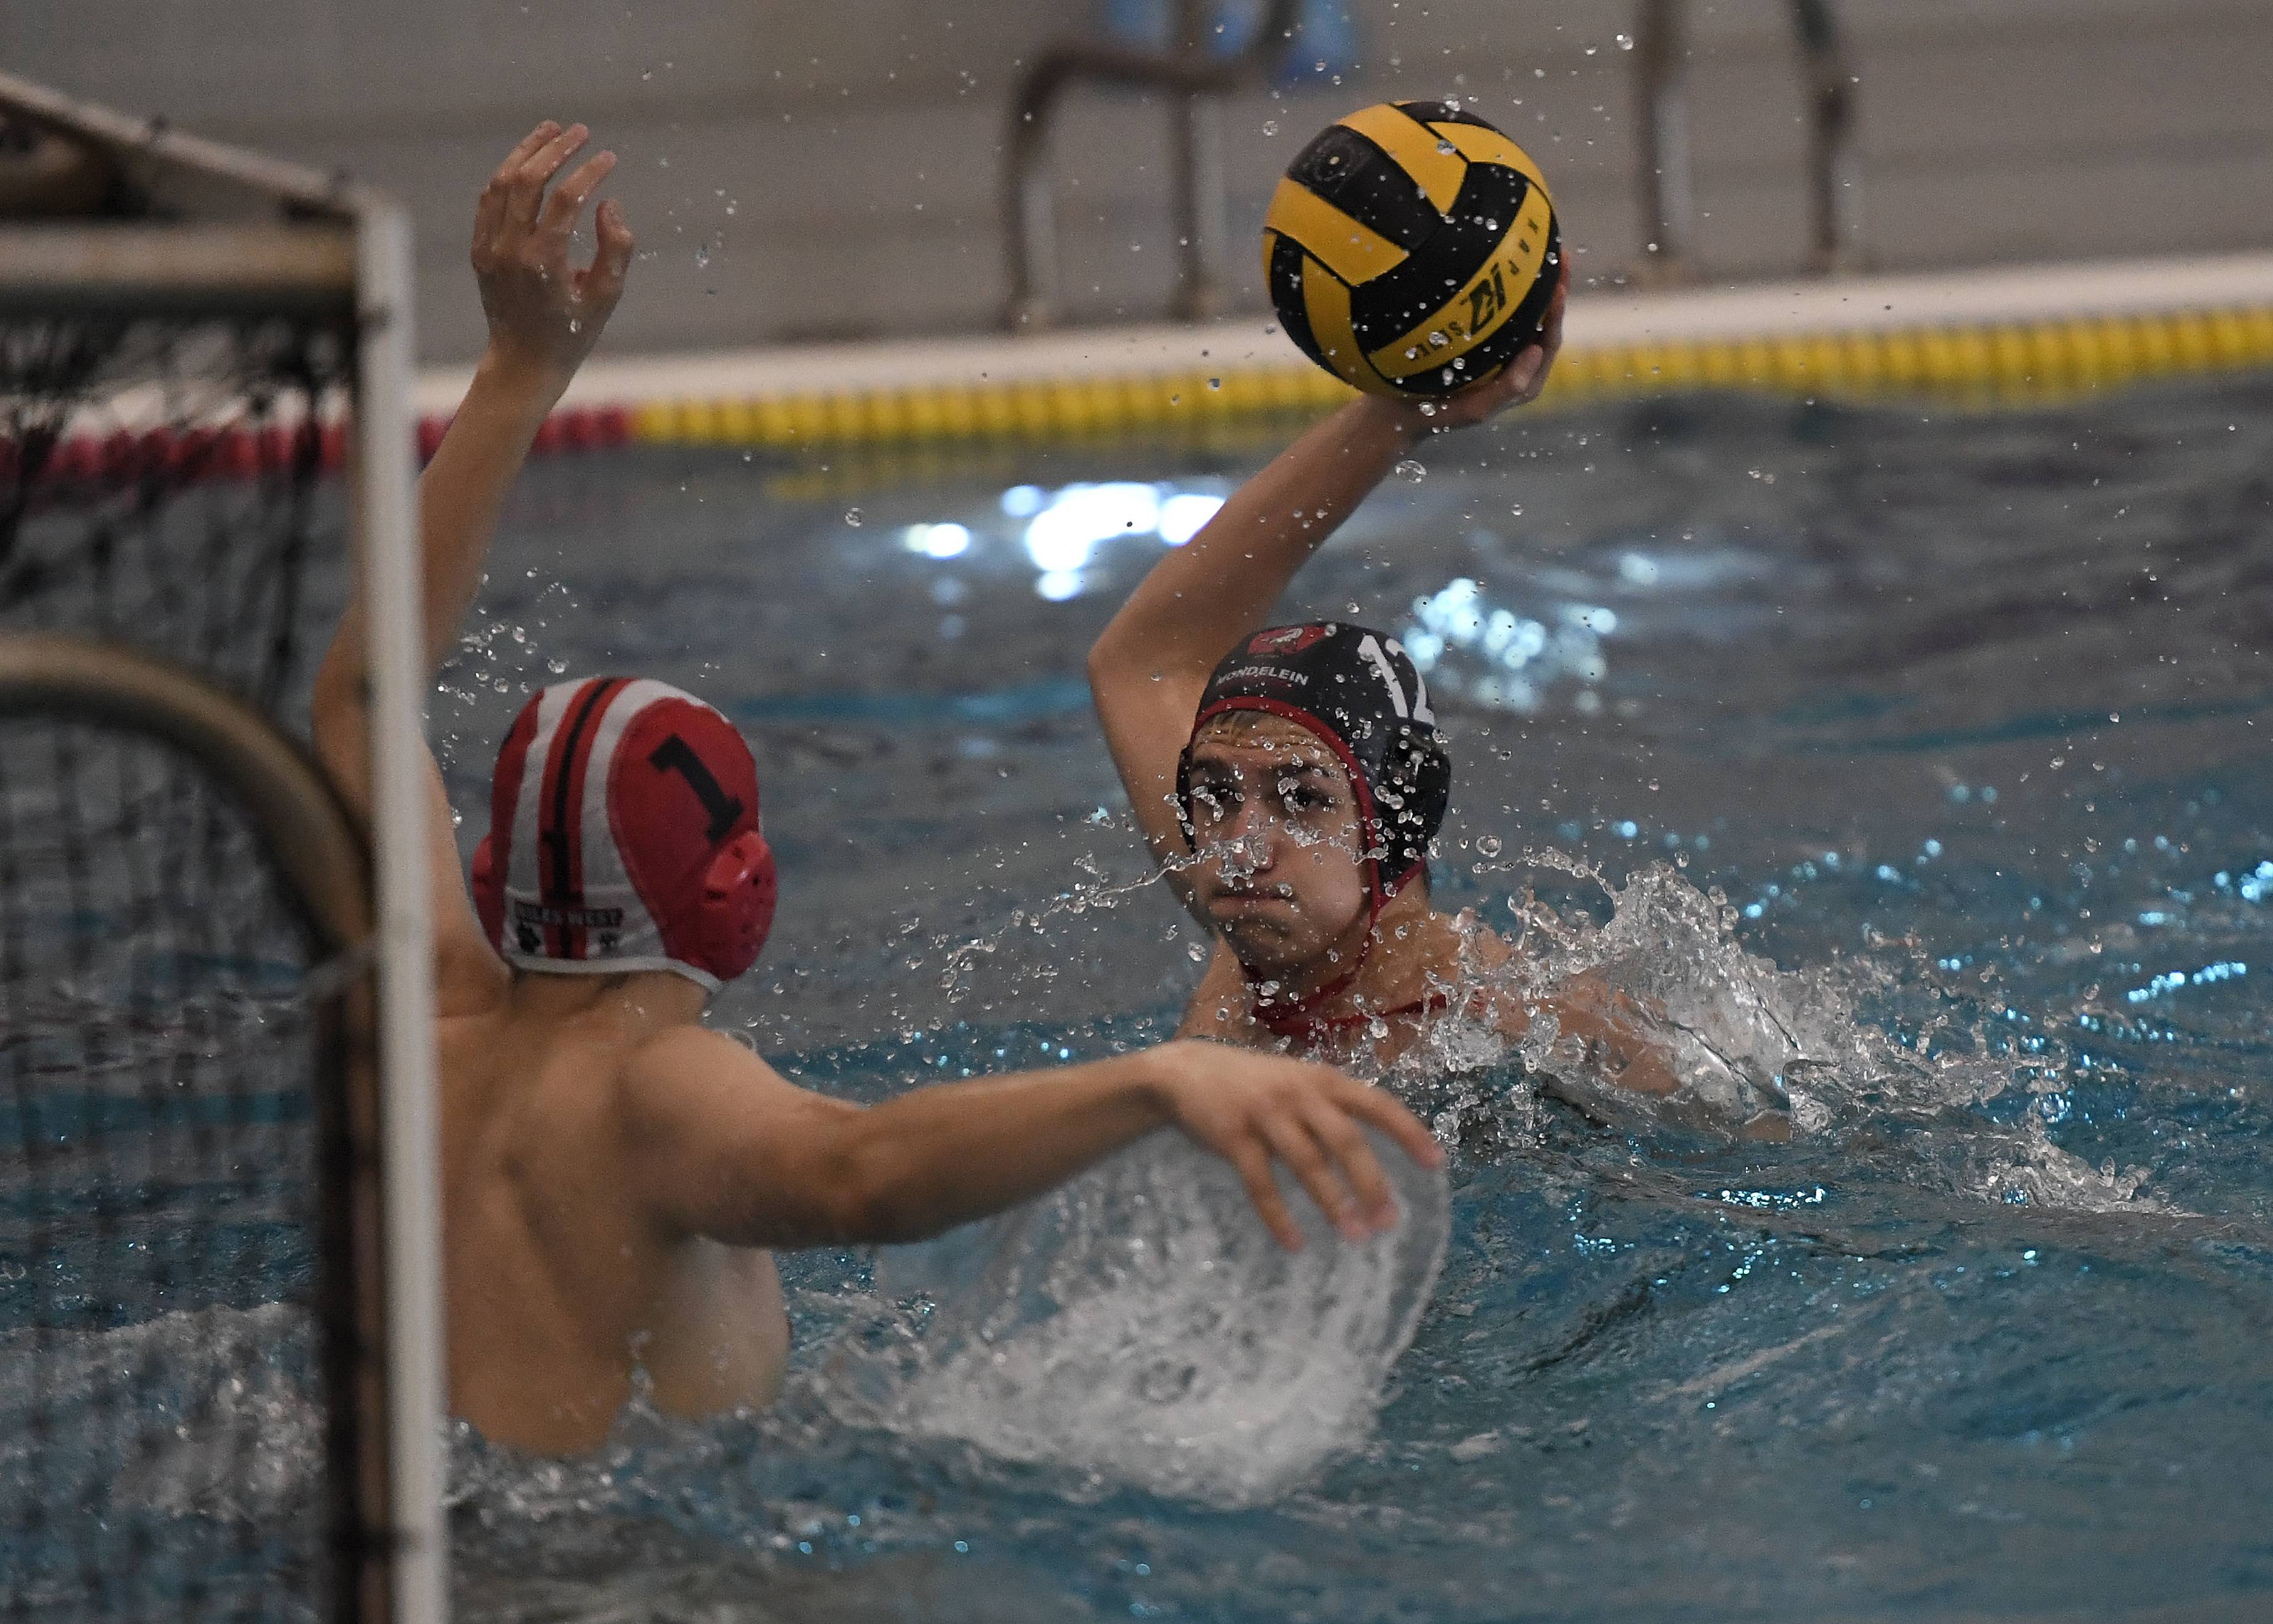 Mundelein's Jake Garcia is seconds away from scoring against Niles West's goalie in the boys water polo varsity invite at Mundelein High School on Saturday.